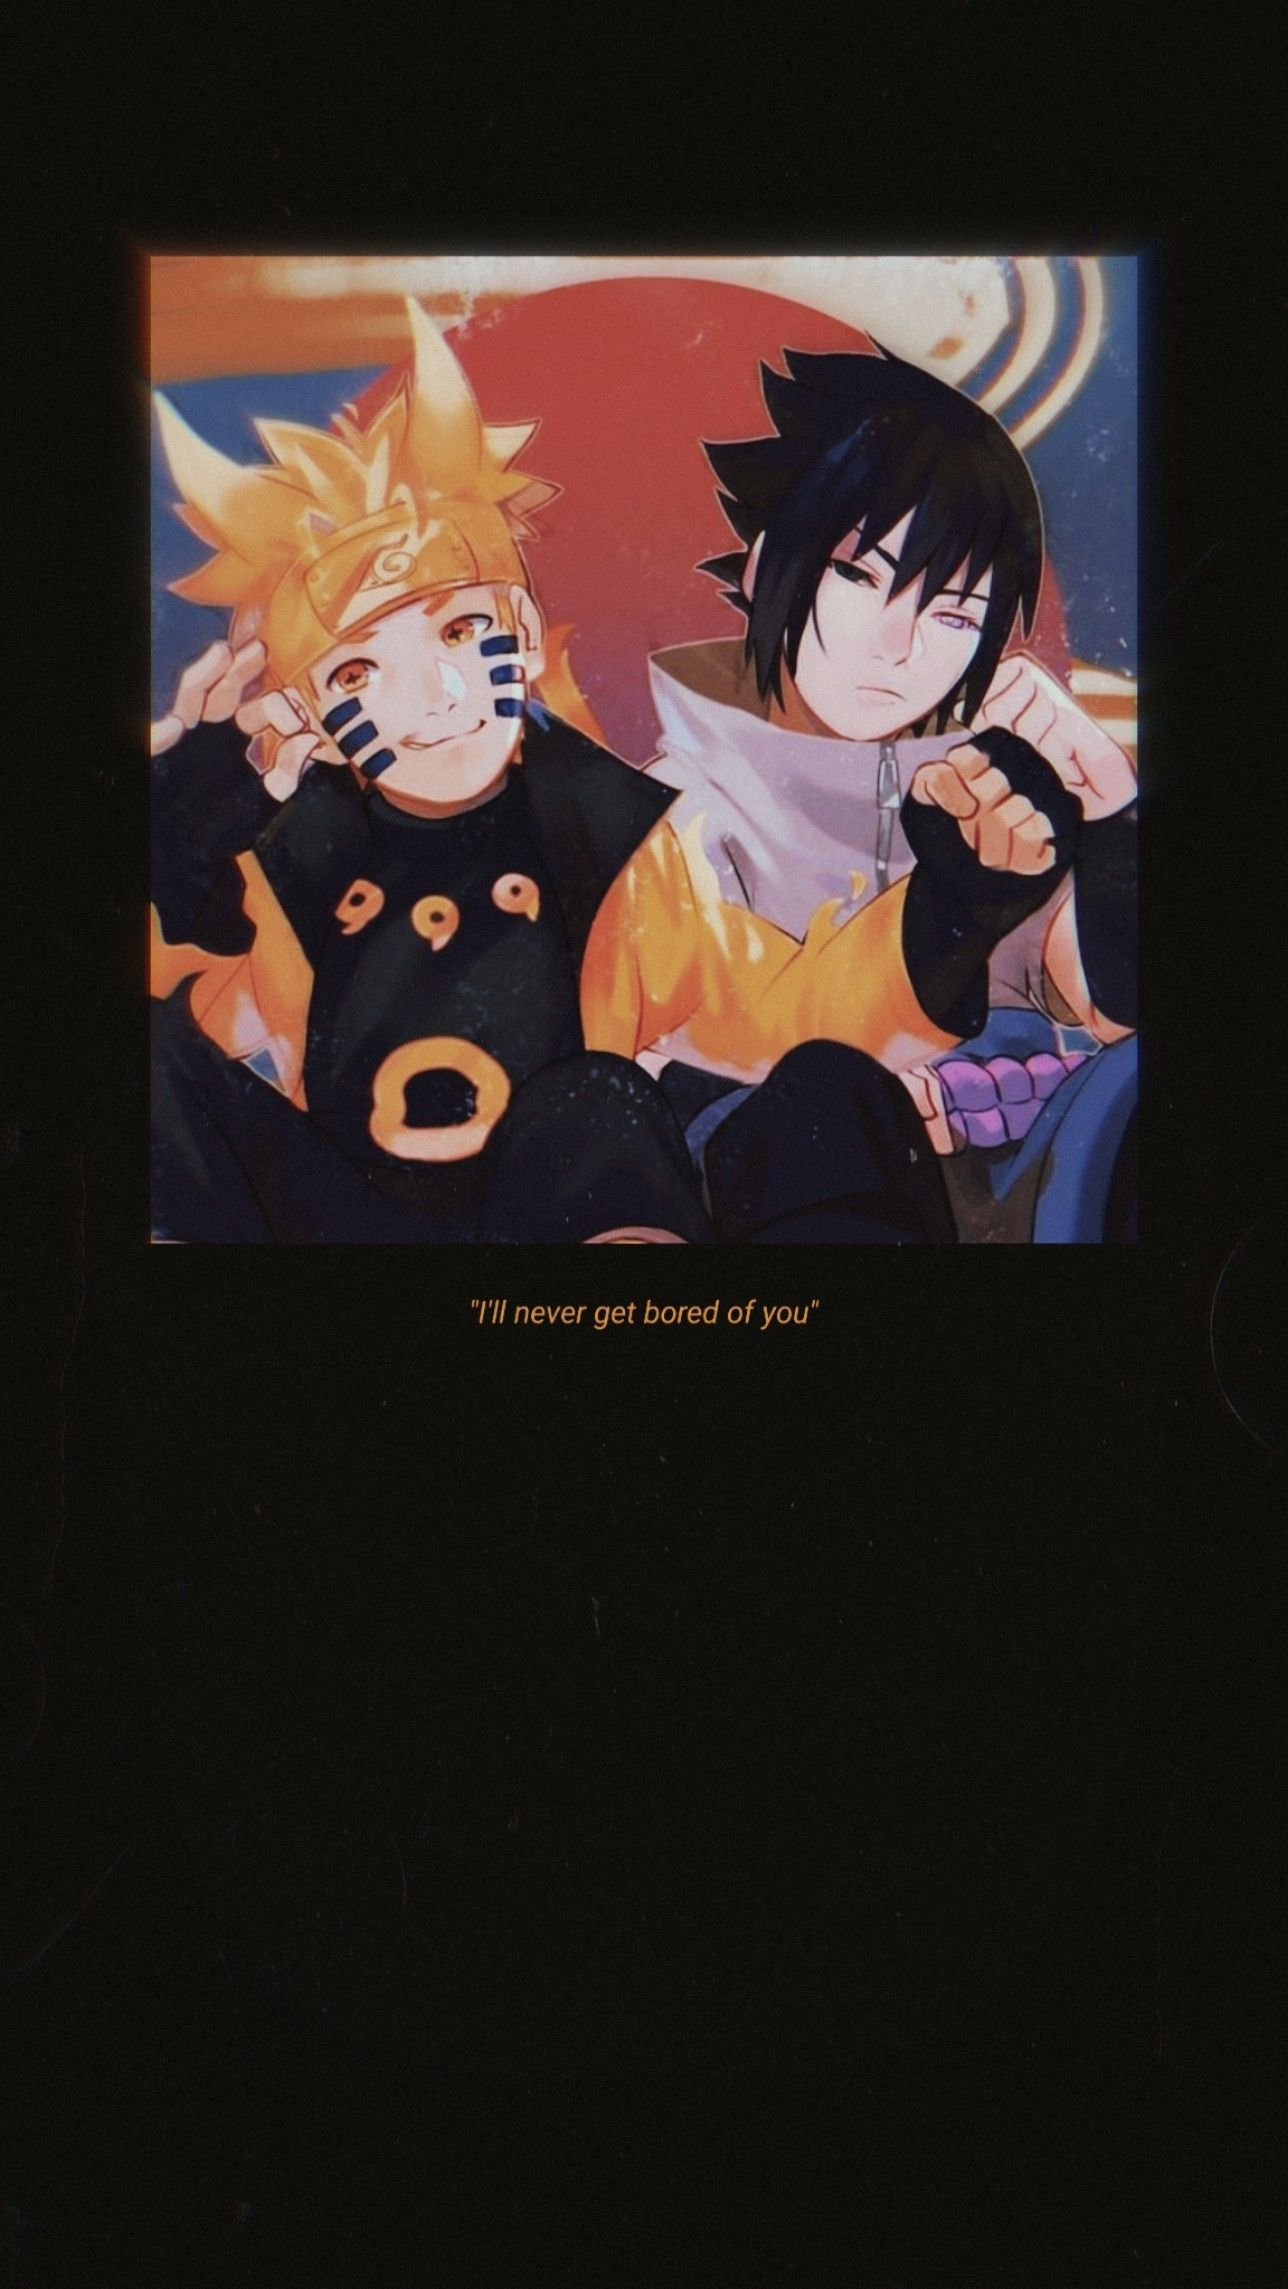 𝑁𝑎𝑟𝑢𝑡𝑜 𝑎𝑛𝑑 𝑆𝑎𝑠𝑢𝑘𝑒 In 2020 Wallpaper Naruto Shippuden Naruto And Sasuke Wallpaper Cute Anime Wallpaper